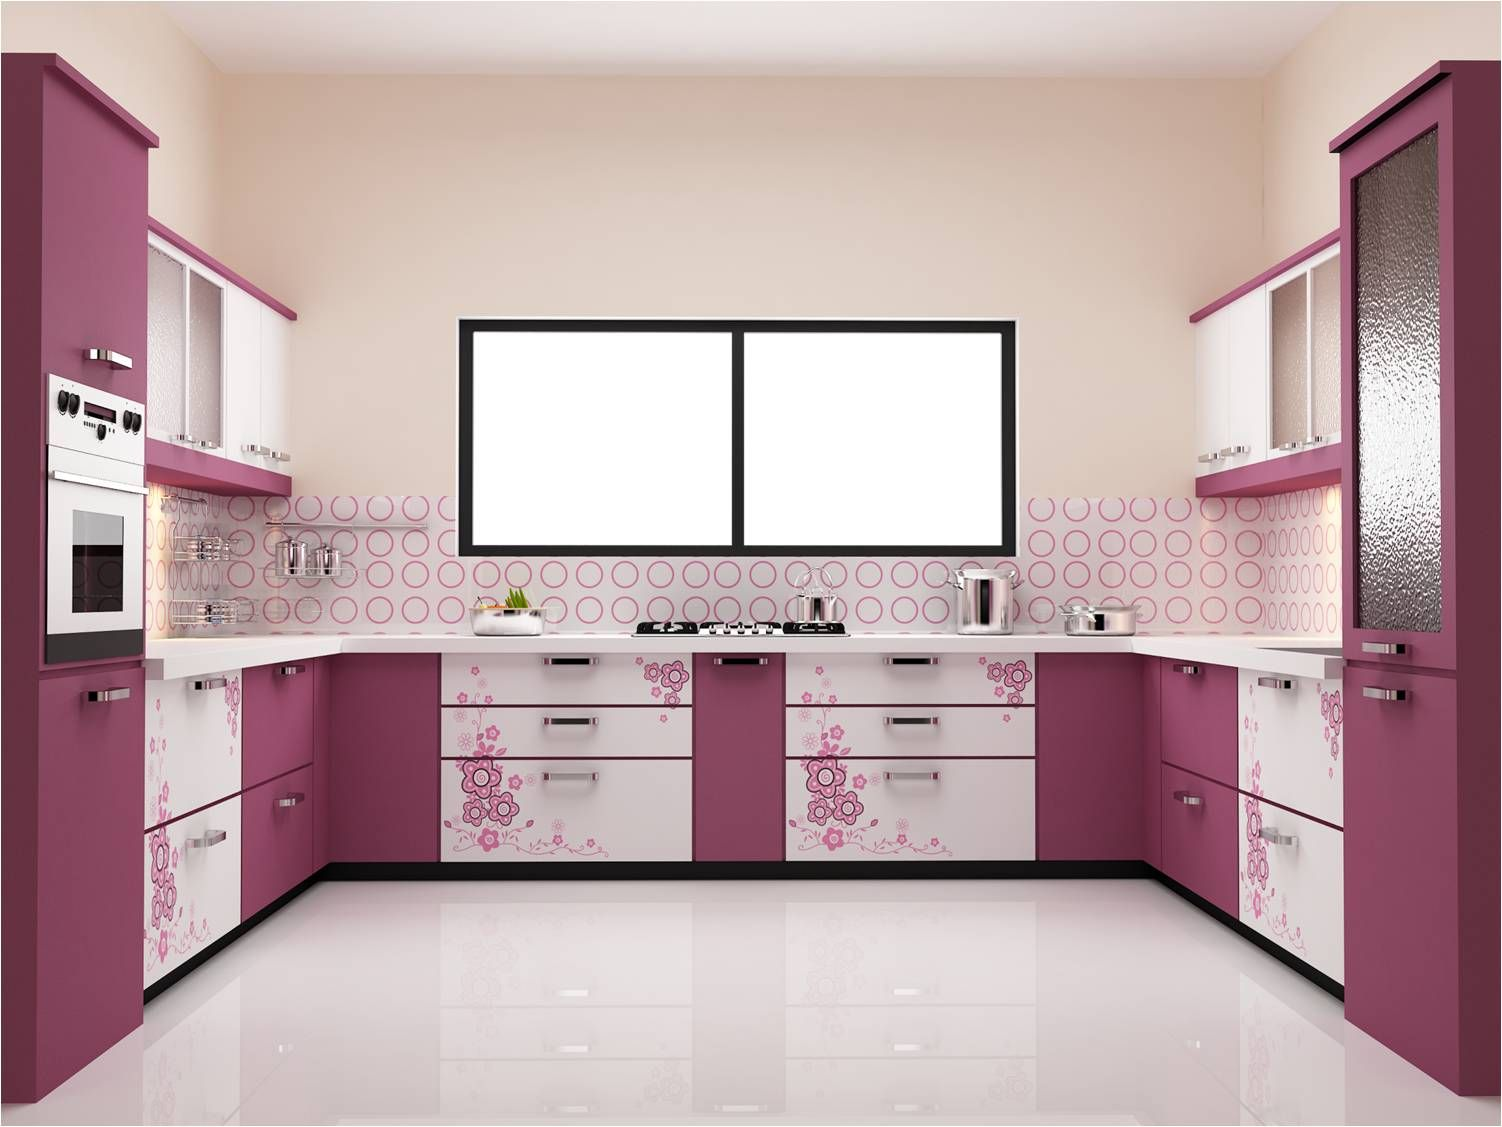 Indian modular kitchen designs chennai - Kitchen Design Entrancing Furniture Modern Design For Purple Modular Kitchen With Floral Decoration Ideas Feats White Painting Wall And Window Black Frame